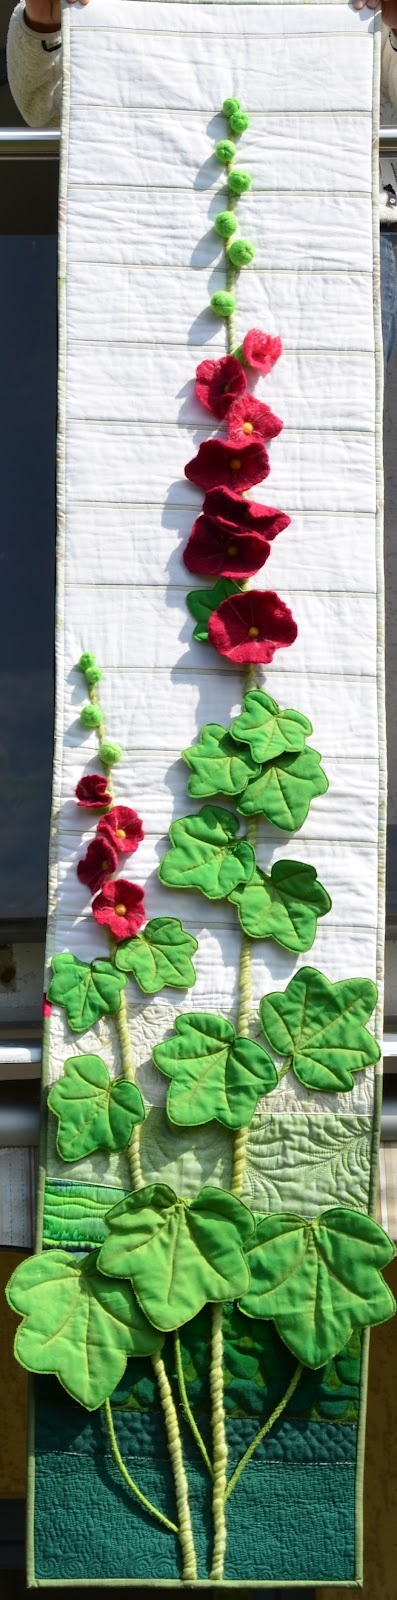 This Hollyhock Quilt is so adorable... and clever.